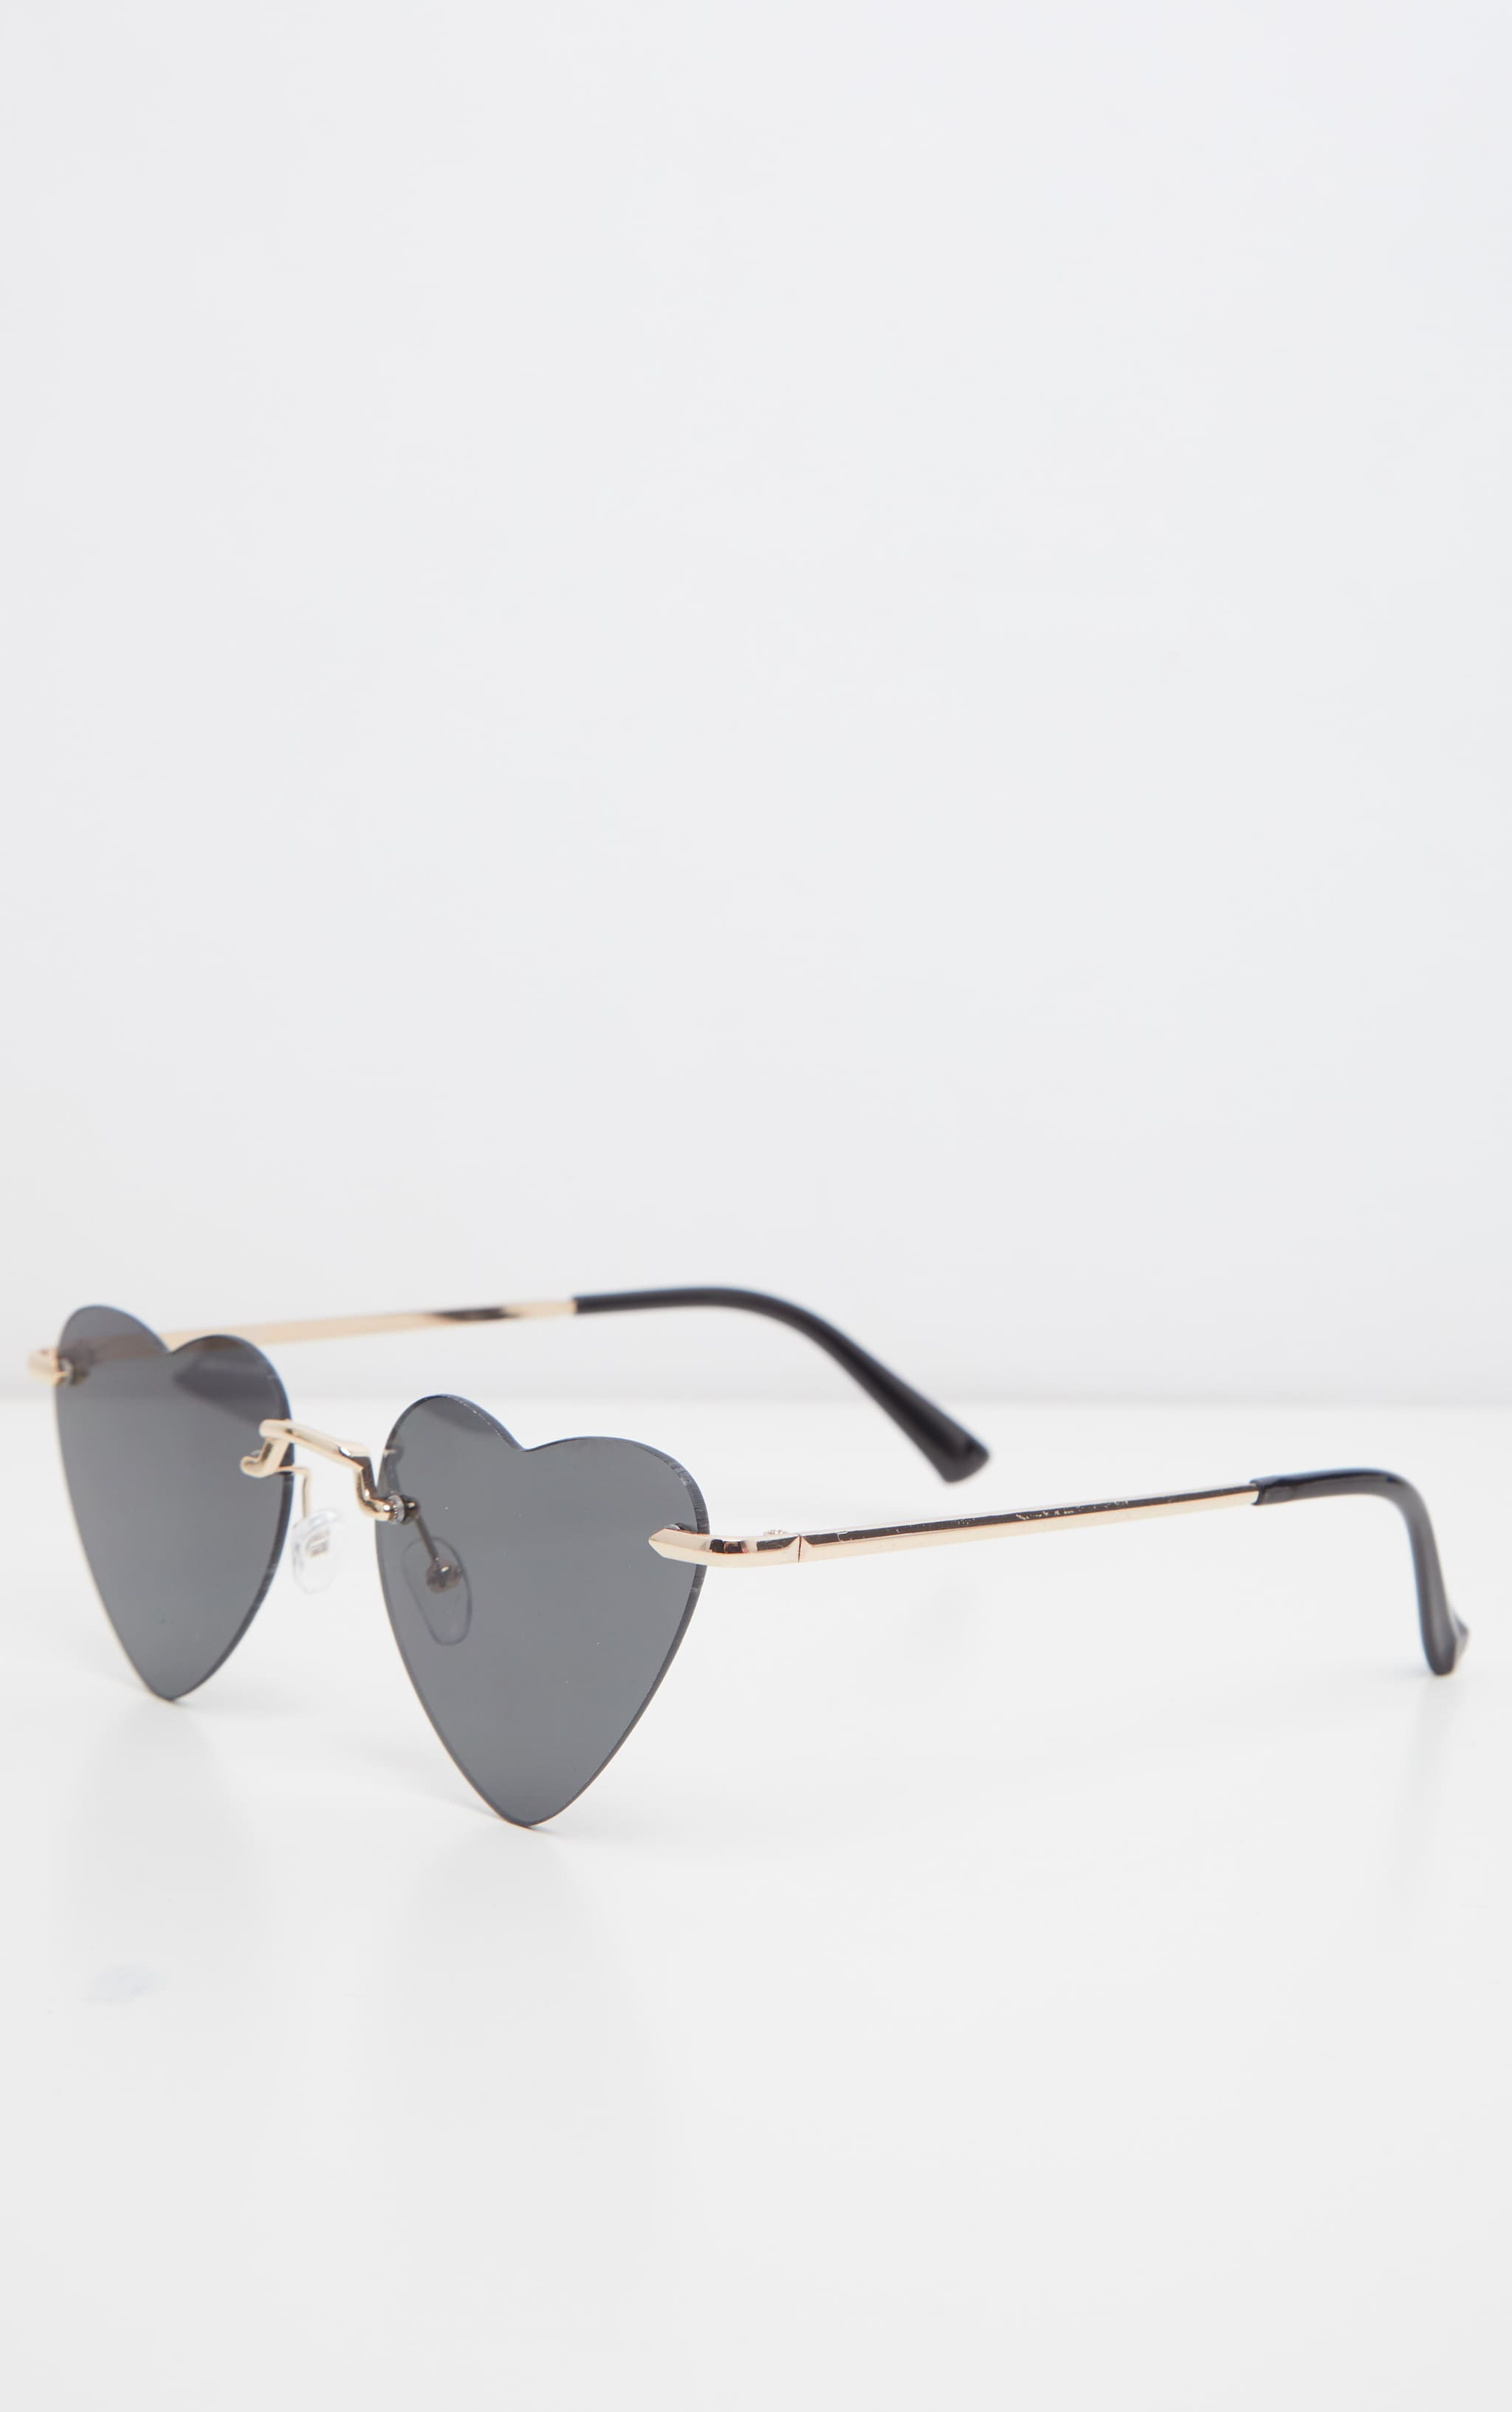 Black Heart Shaped Sunglasses 3